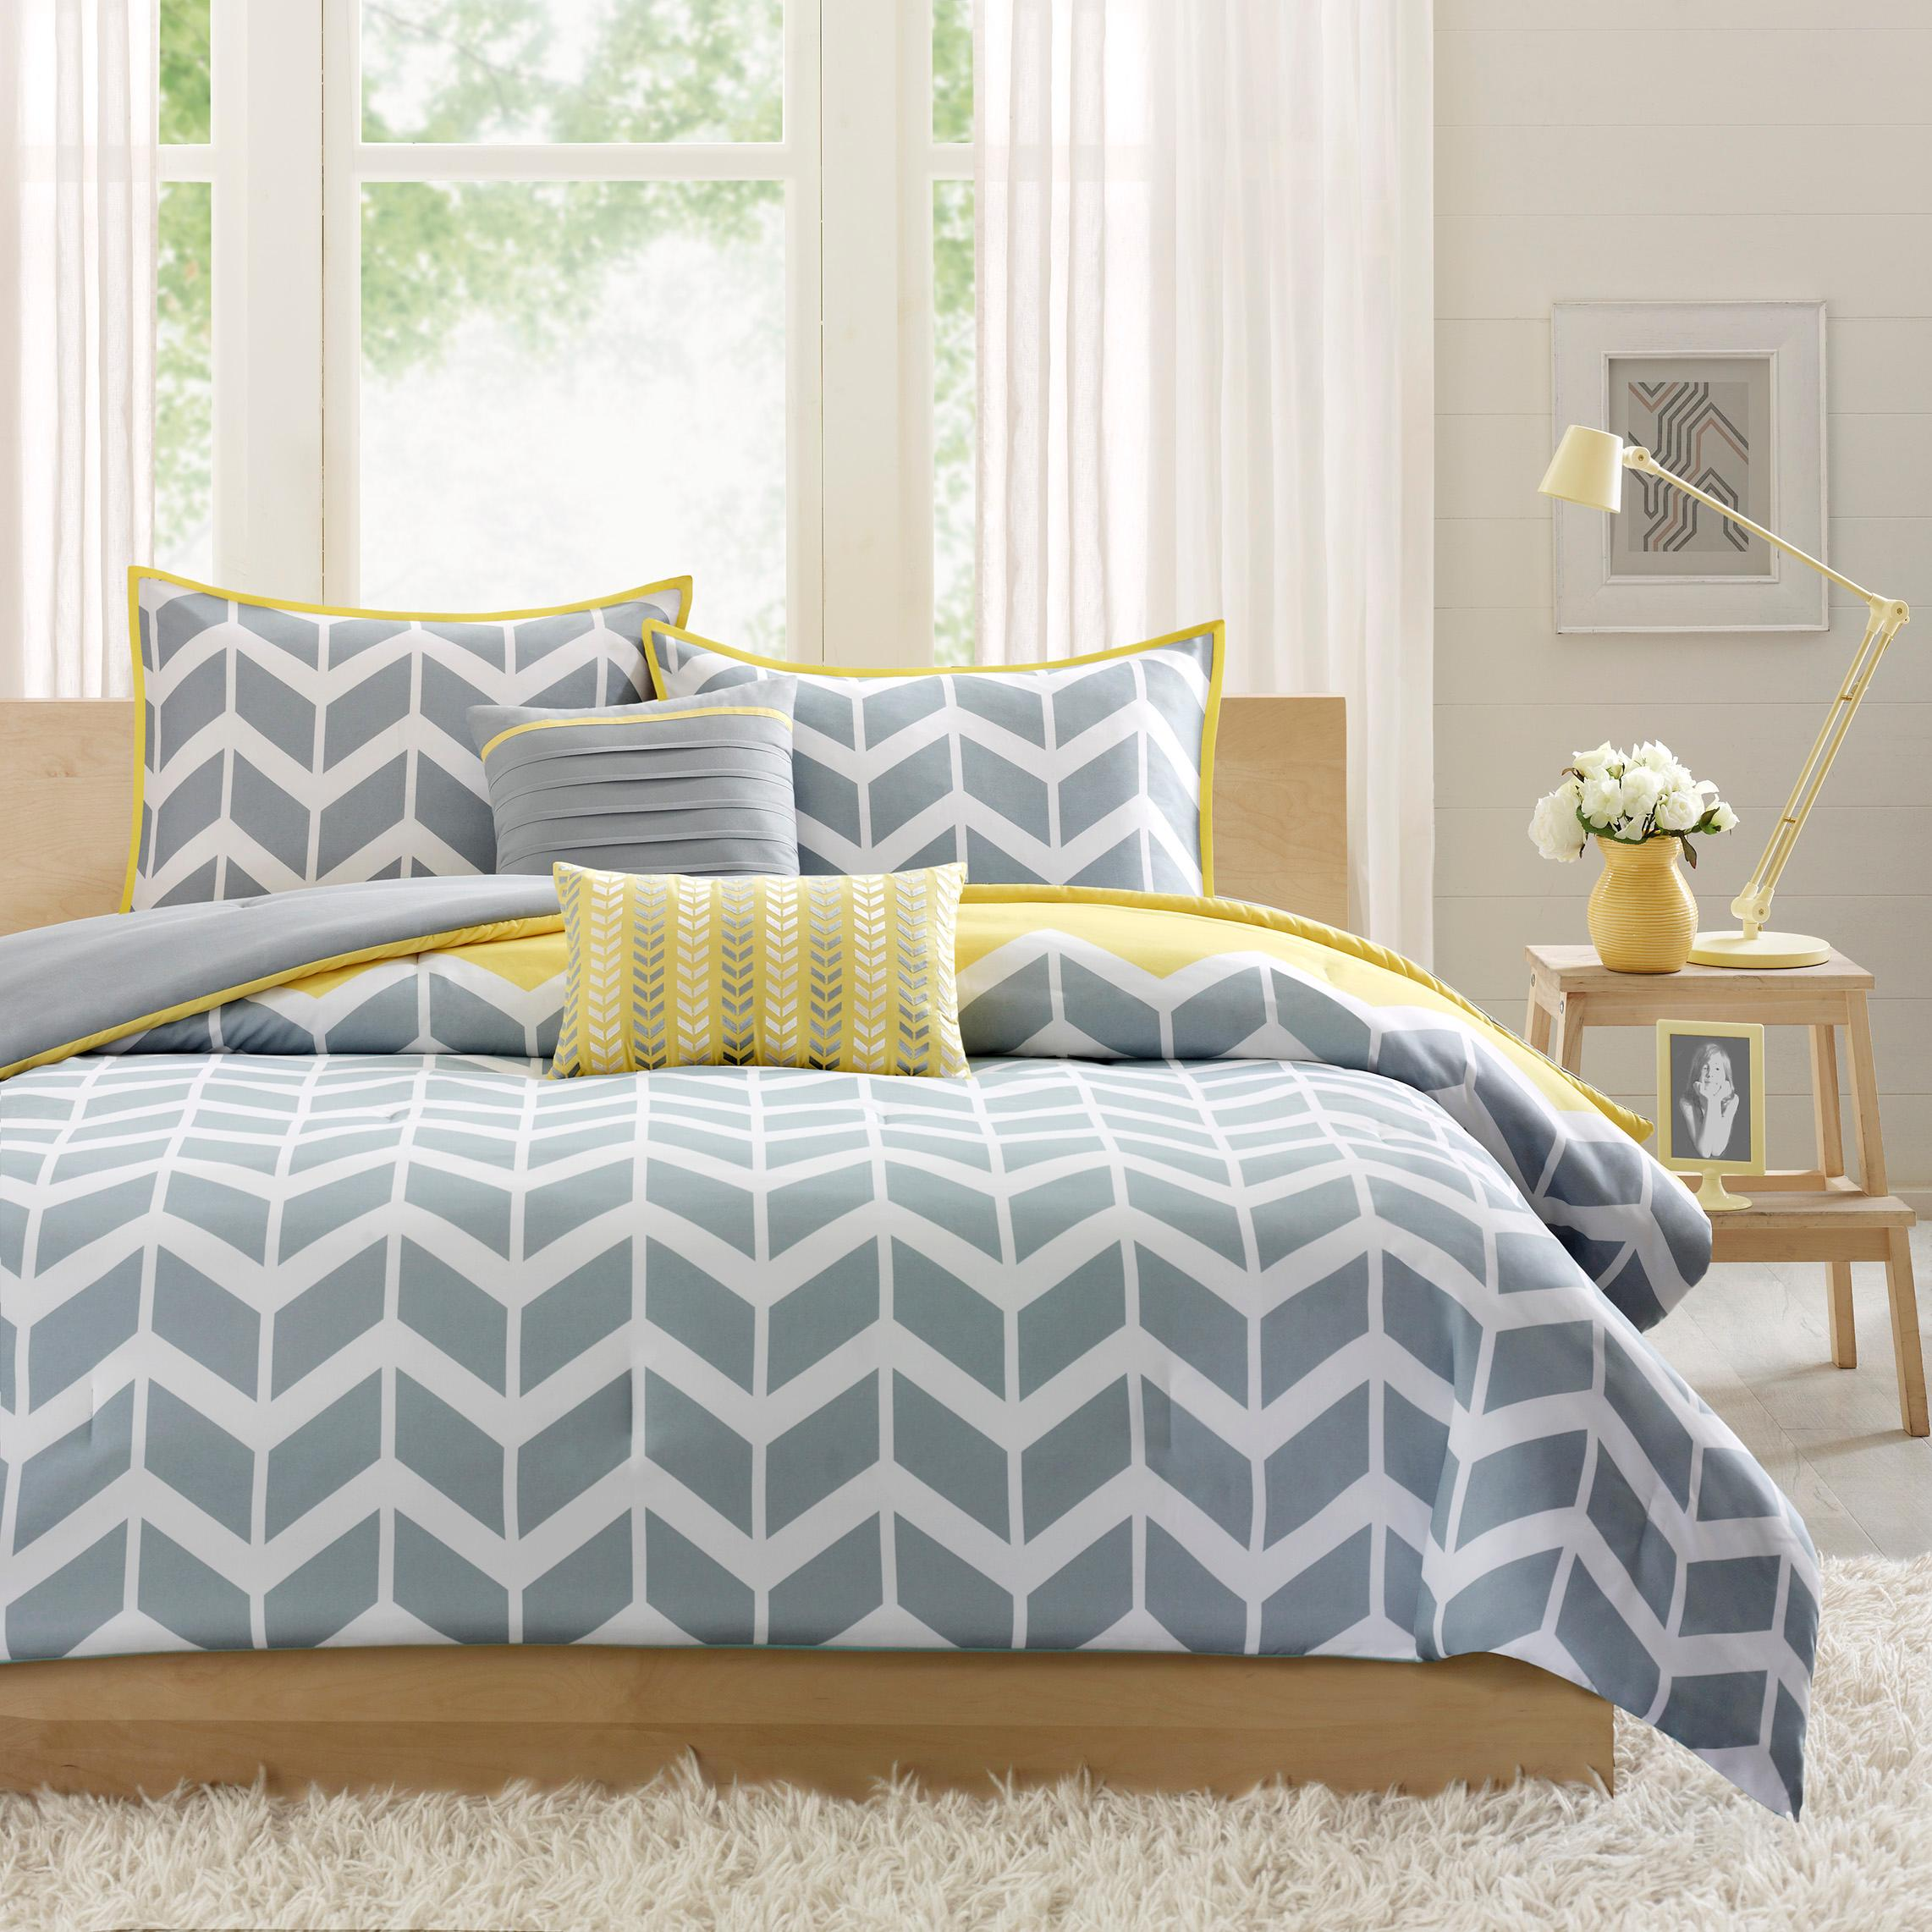 covers insert king size queen twin duvet cover home